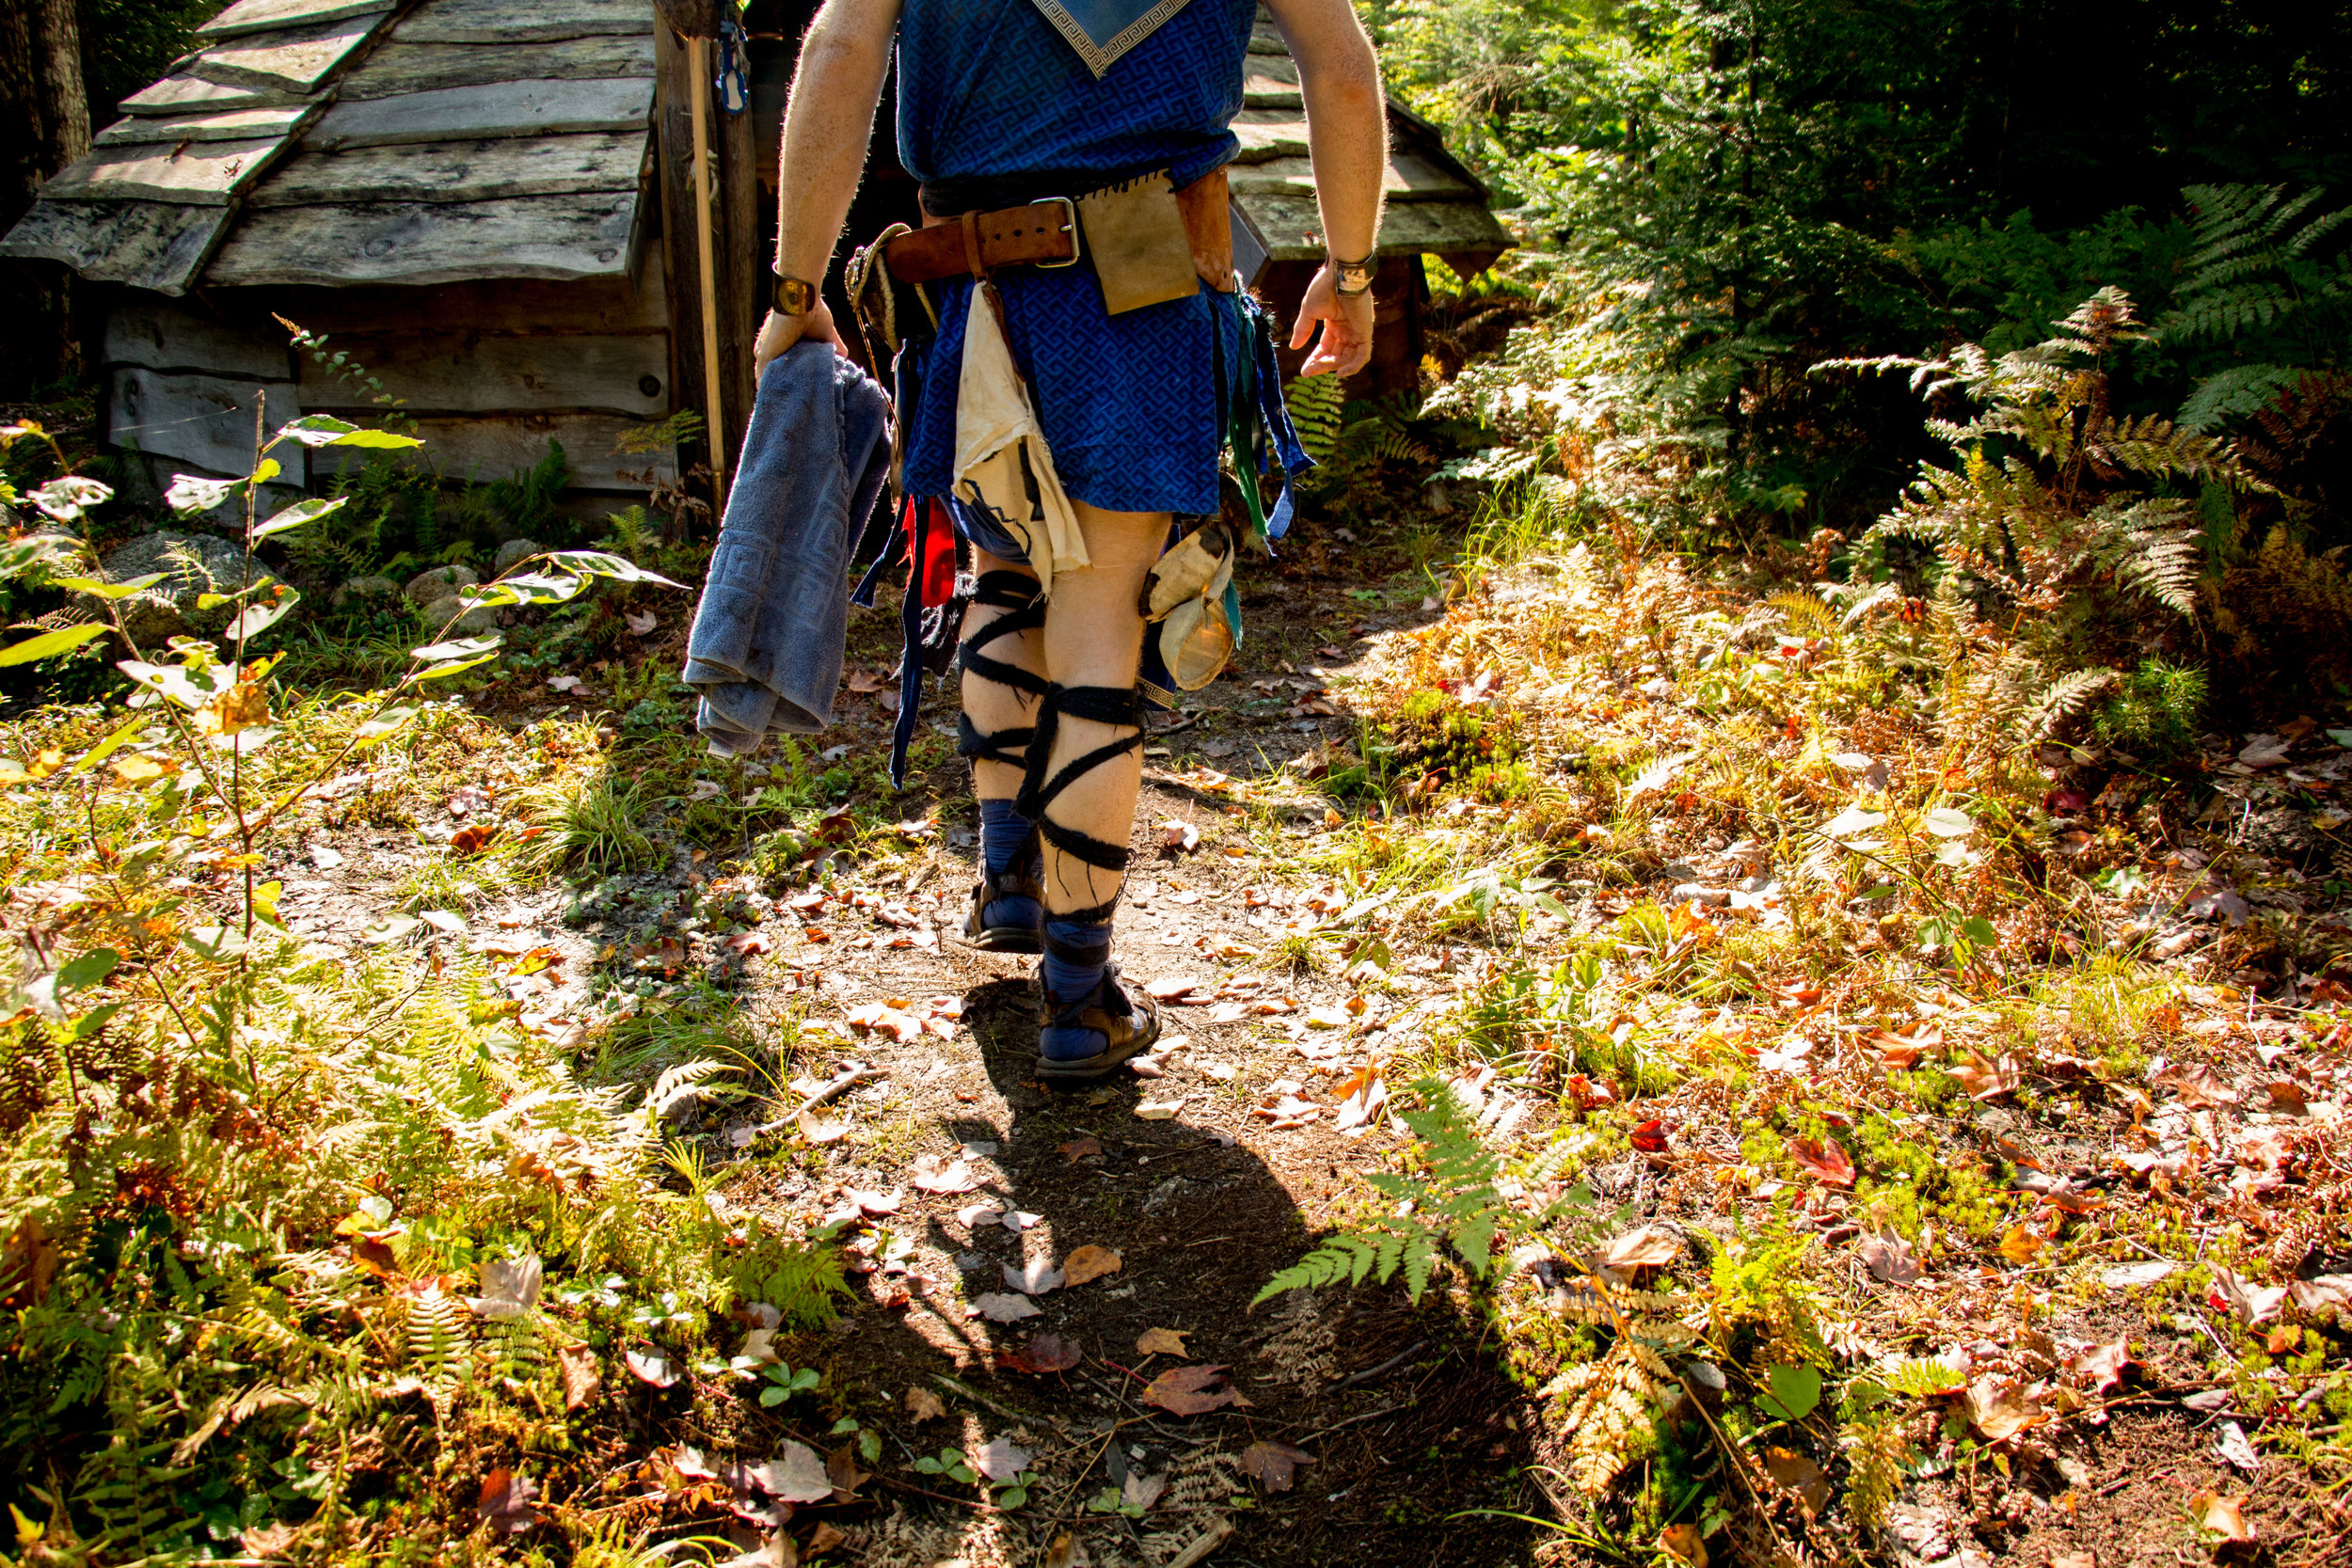 "For 8 days every summer, Dagorhir chapters come together in Pennsylvania at an event called Ragnorok. Participants fight in battles, sell and trade crafts, and socialize with other larpers. ""My life is Ragnorok, my birthday, Ragnorok, "" says Kevin Dillard."